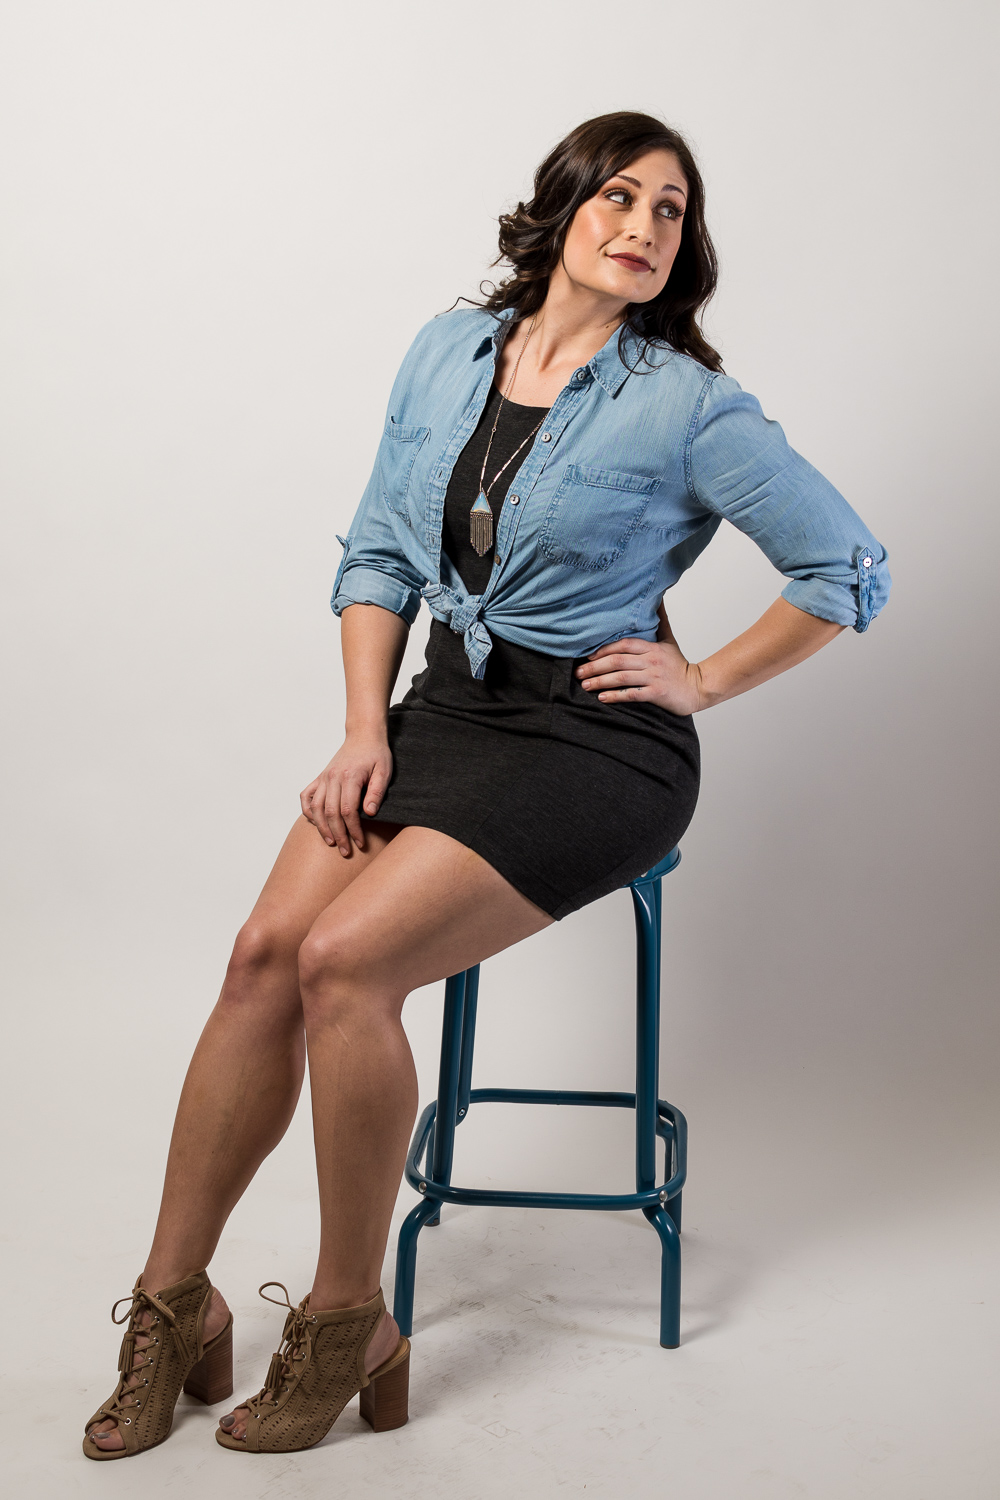 Greer Image Consulting - Women Styled - Raquel Styles An Austin Women For A Tech Company Job